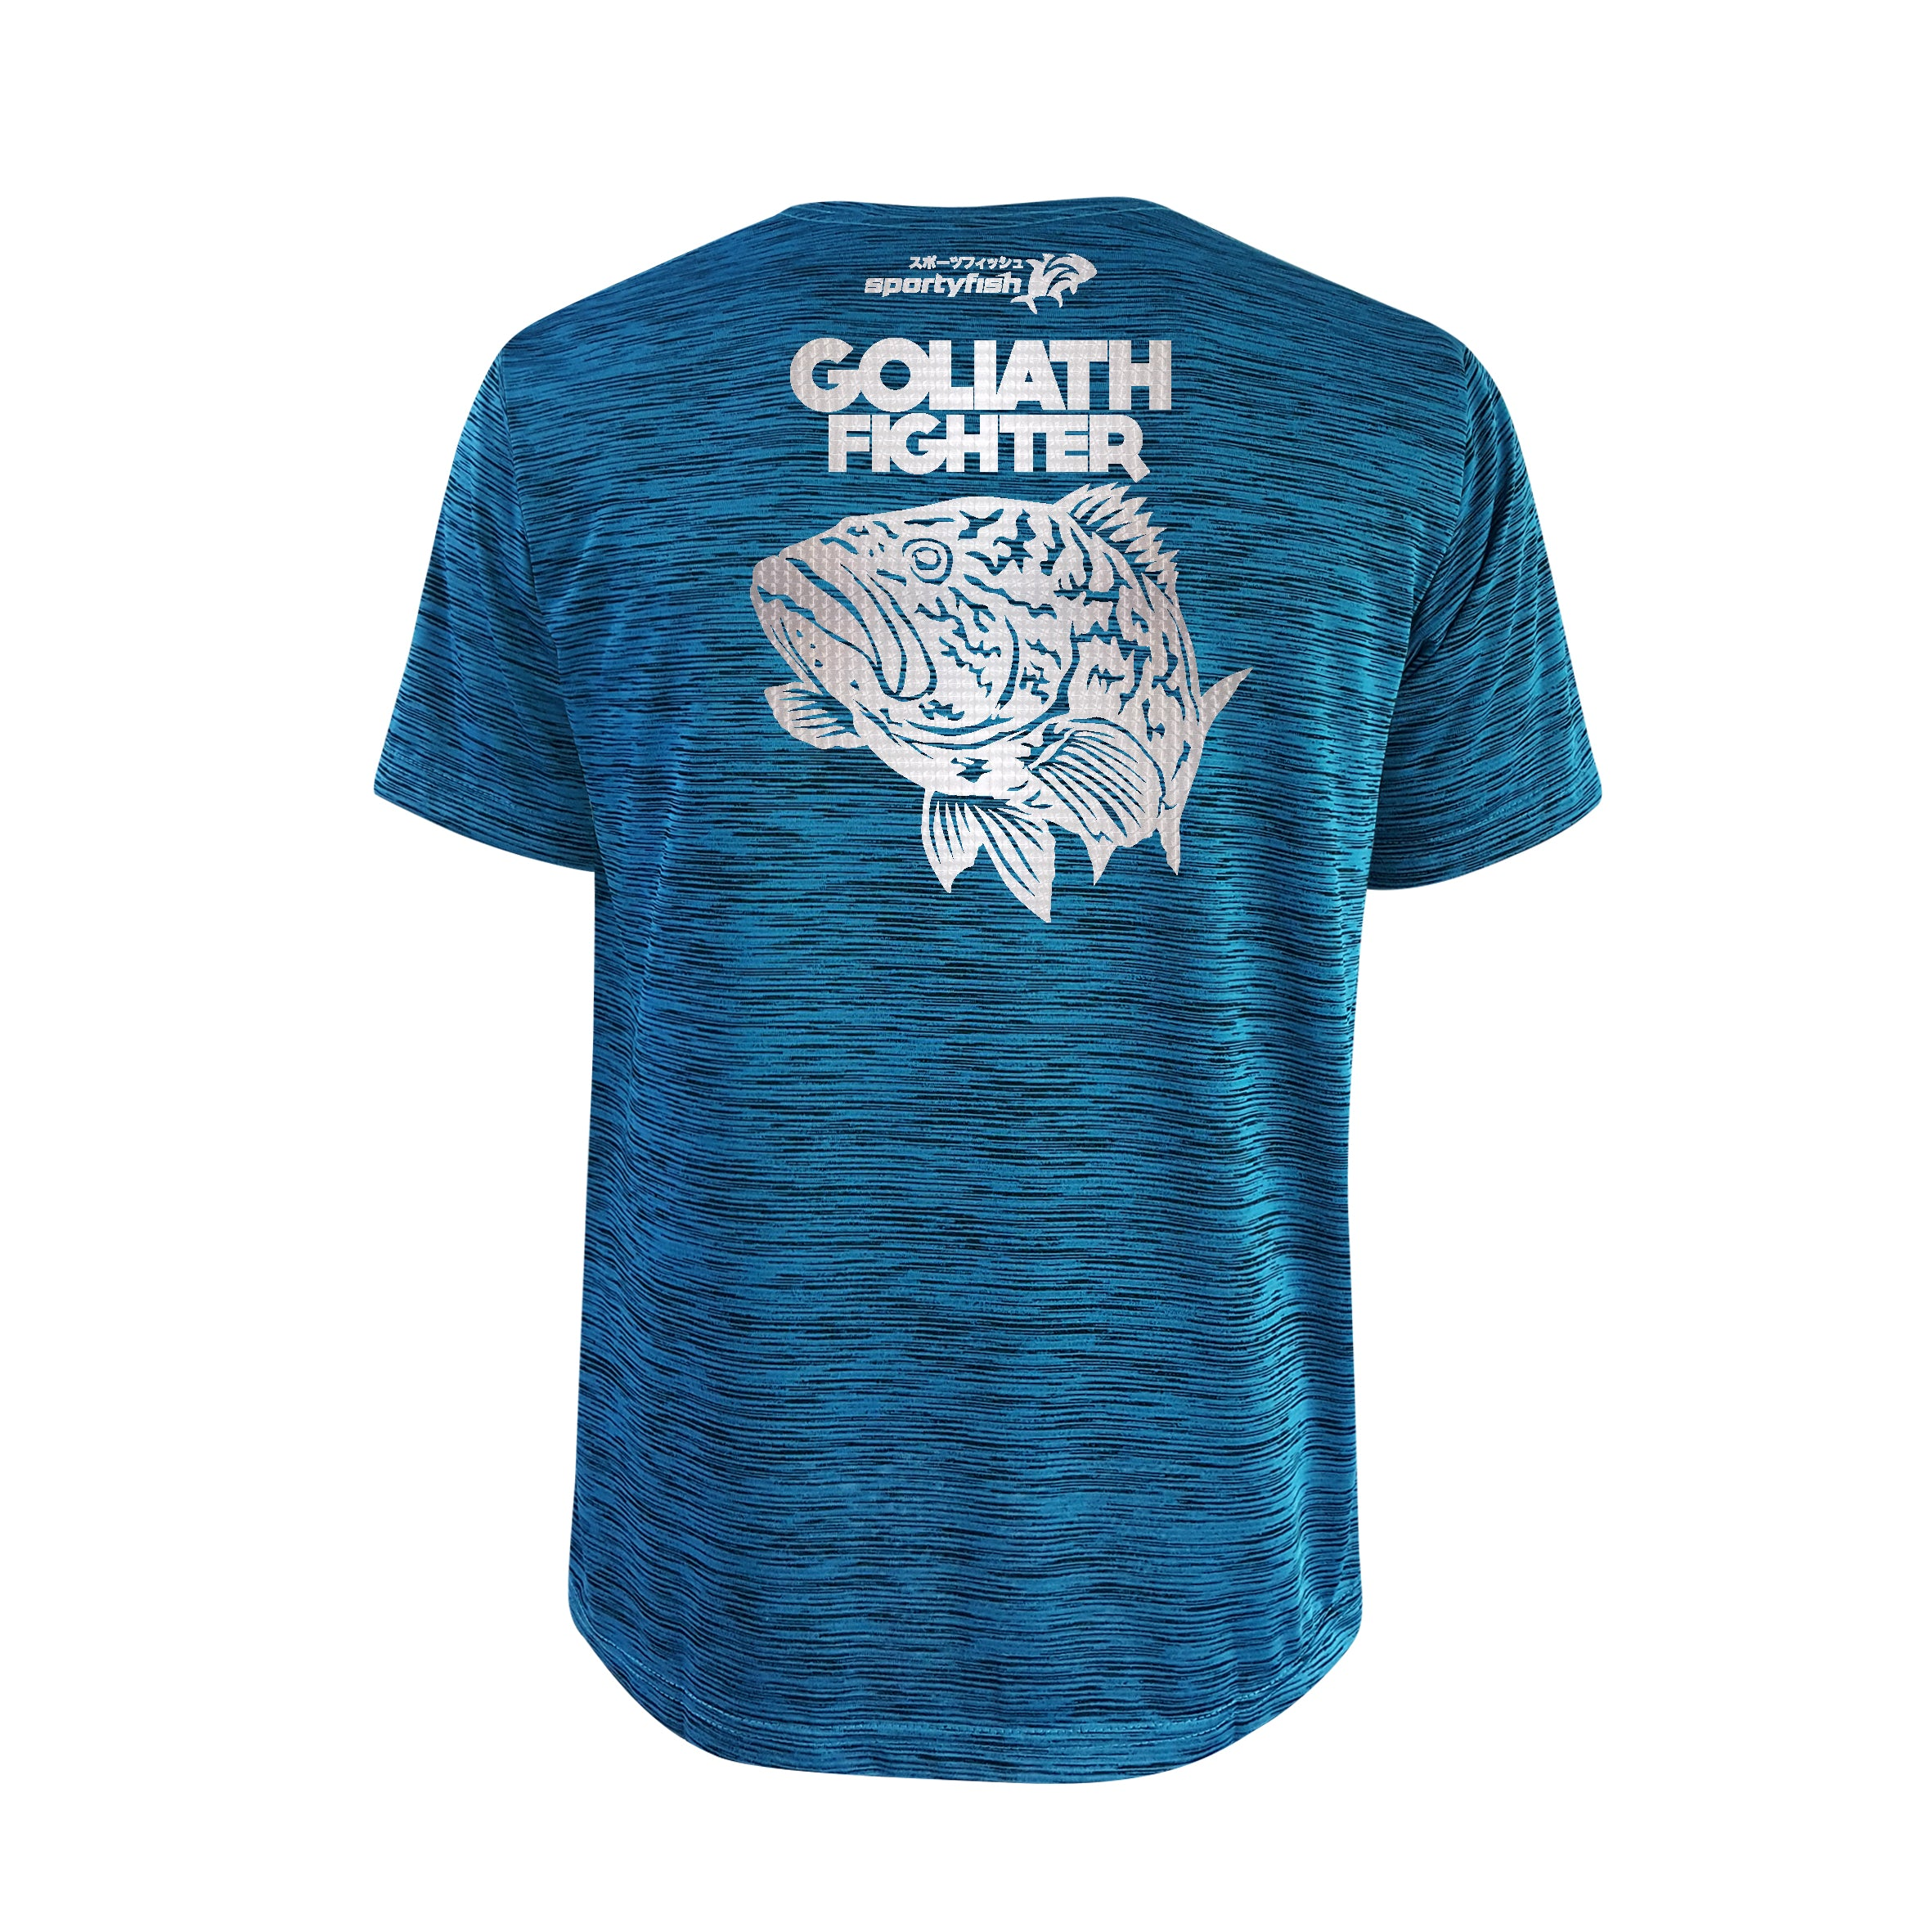 SportyFish Bold Series Turquoise T-shirt(back view): The Grouper(Goliath Fighter)